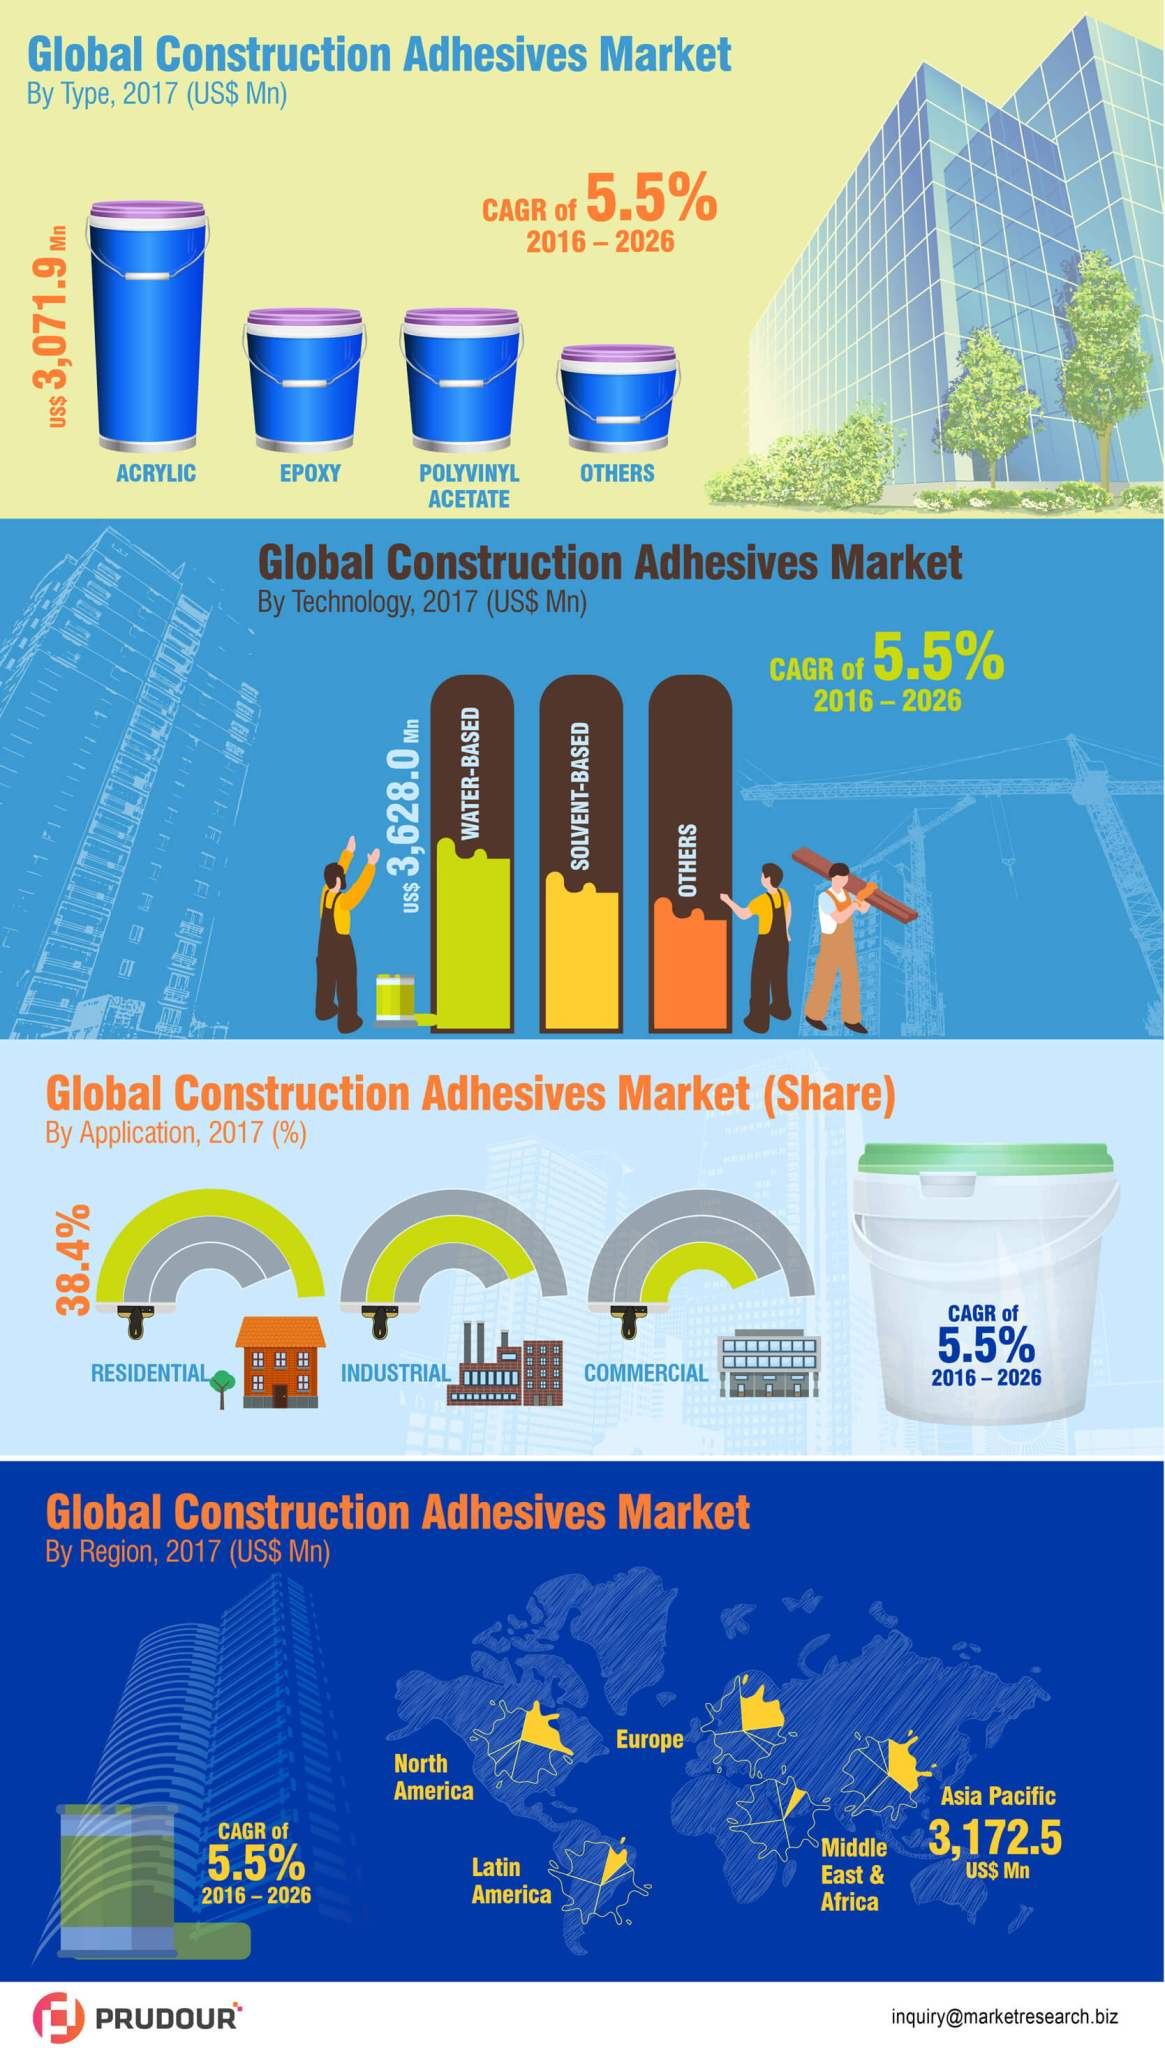 To Boost With CAGR Of 5.5%: Global Construction Adhesives Market Rise With CAGR of 5.5% from 2017 to 2026